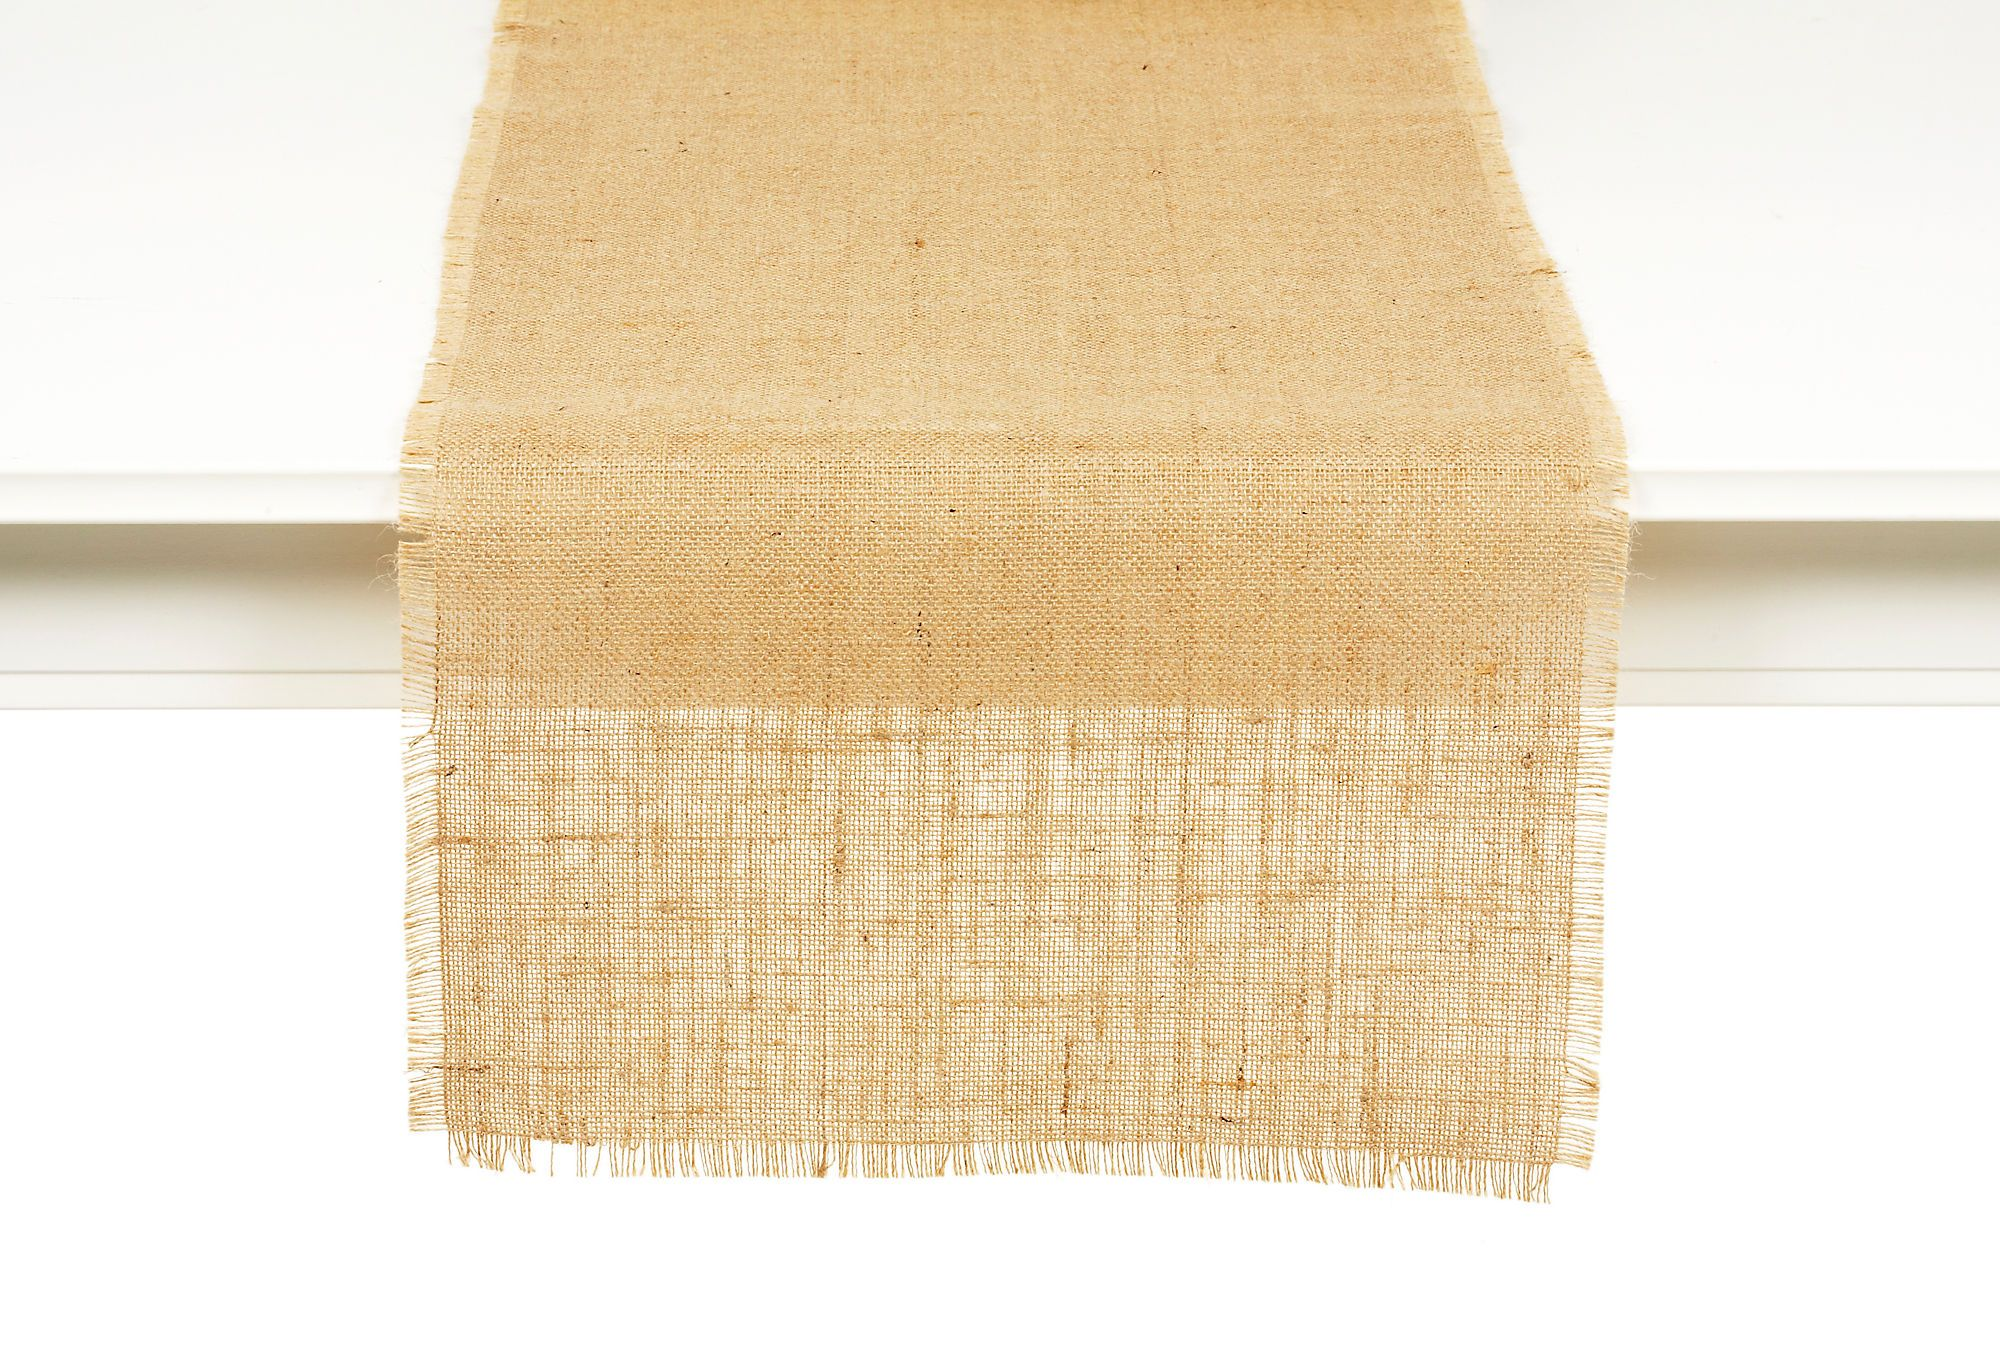 Burlap Natural Runner - great for organic and rustic tablescapes